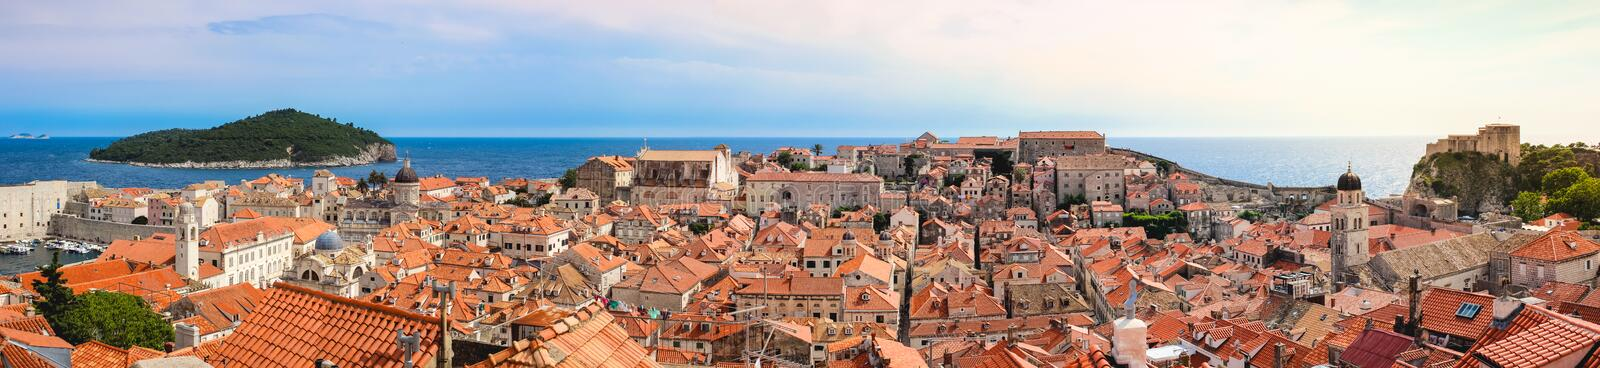 Panorama old fortifieod city Dubrovnik Croatia, royalty free stock images